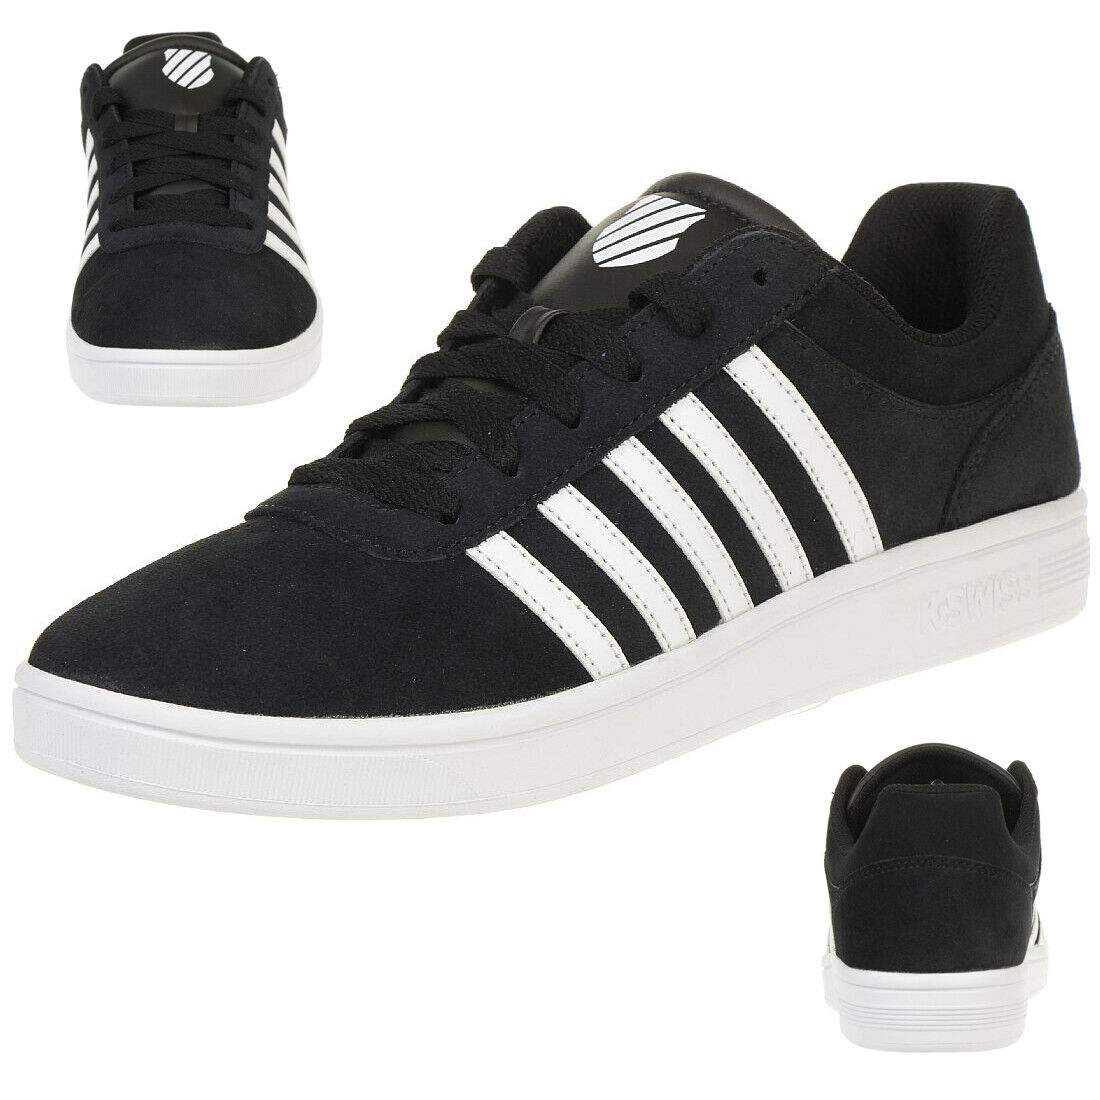 K-Swiss Court Cheswick Sde shoes Trainers Black 05676-002-M